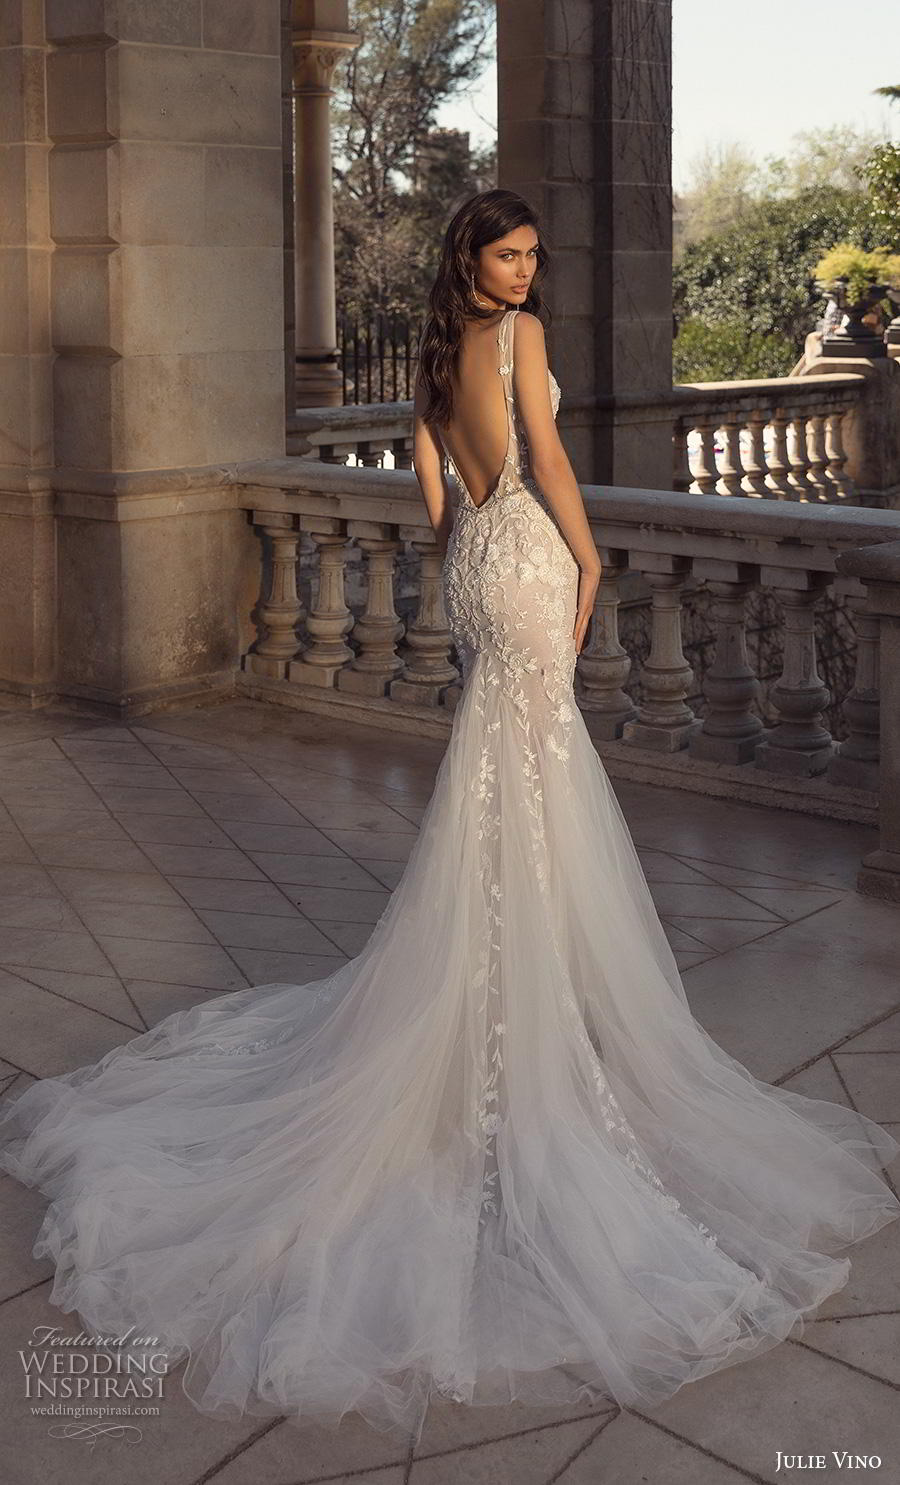 julie vino 2020 barcelona bridal sleeveless deep plunging v neck heavily embellished bodice side open sexy glamorous mermaid wedding dress backless low back chapel train (3) bv